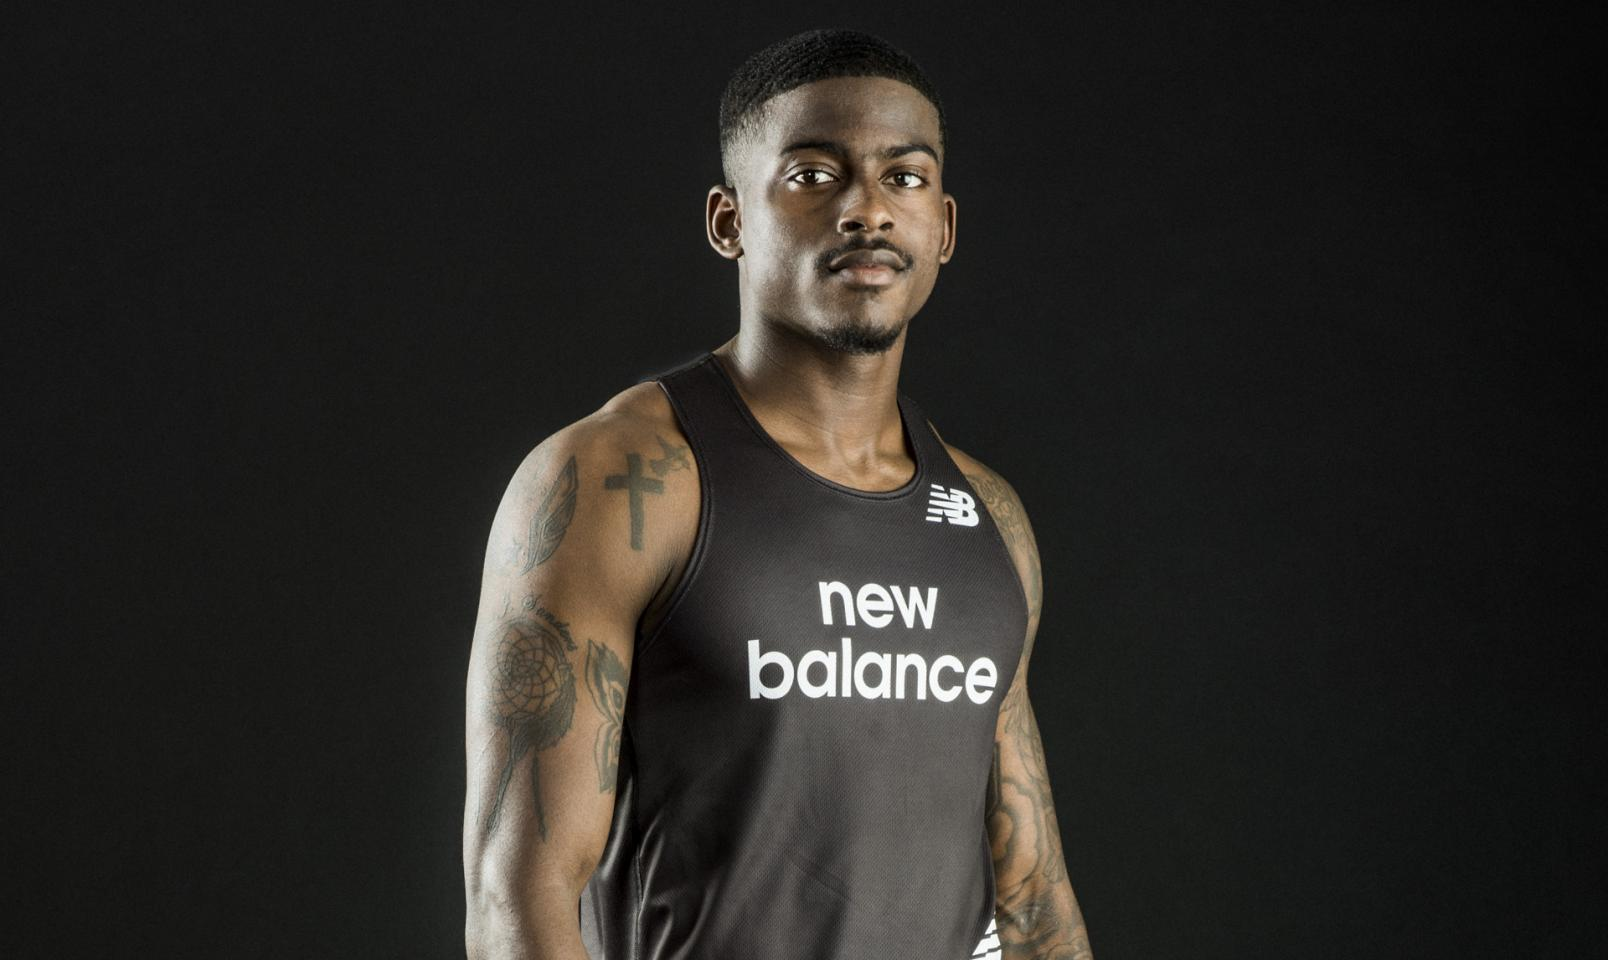 Photo by NewBalance.com